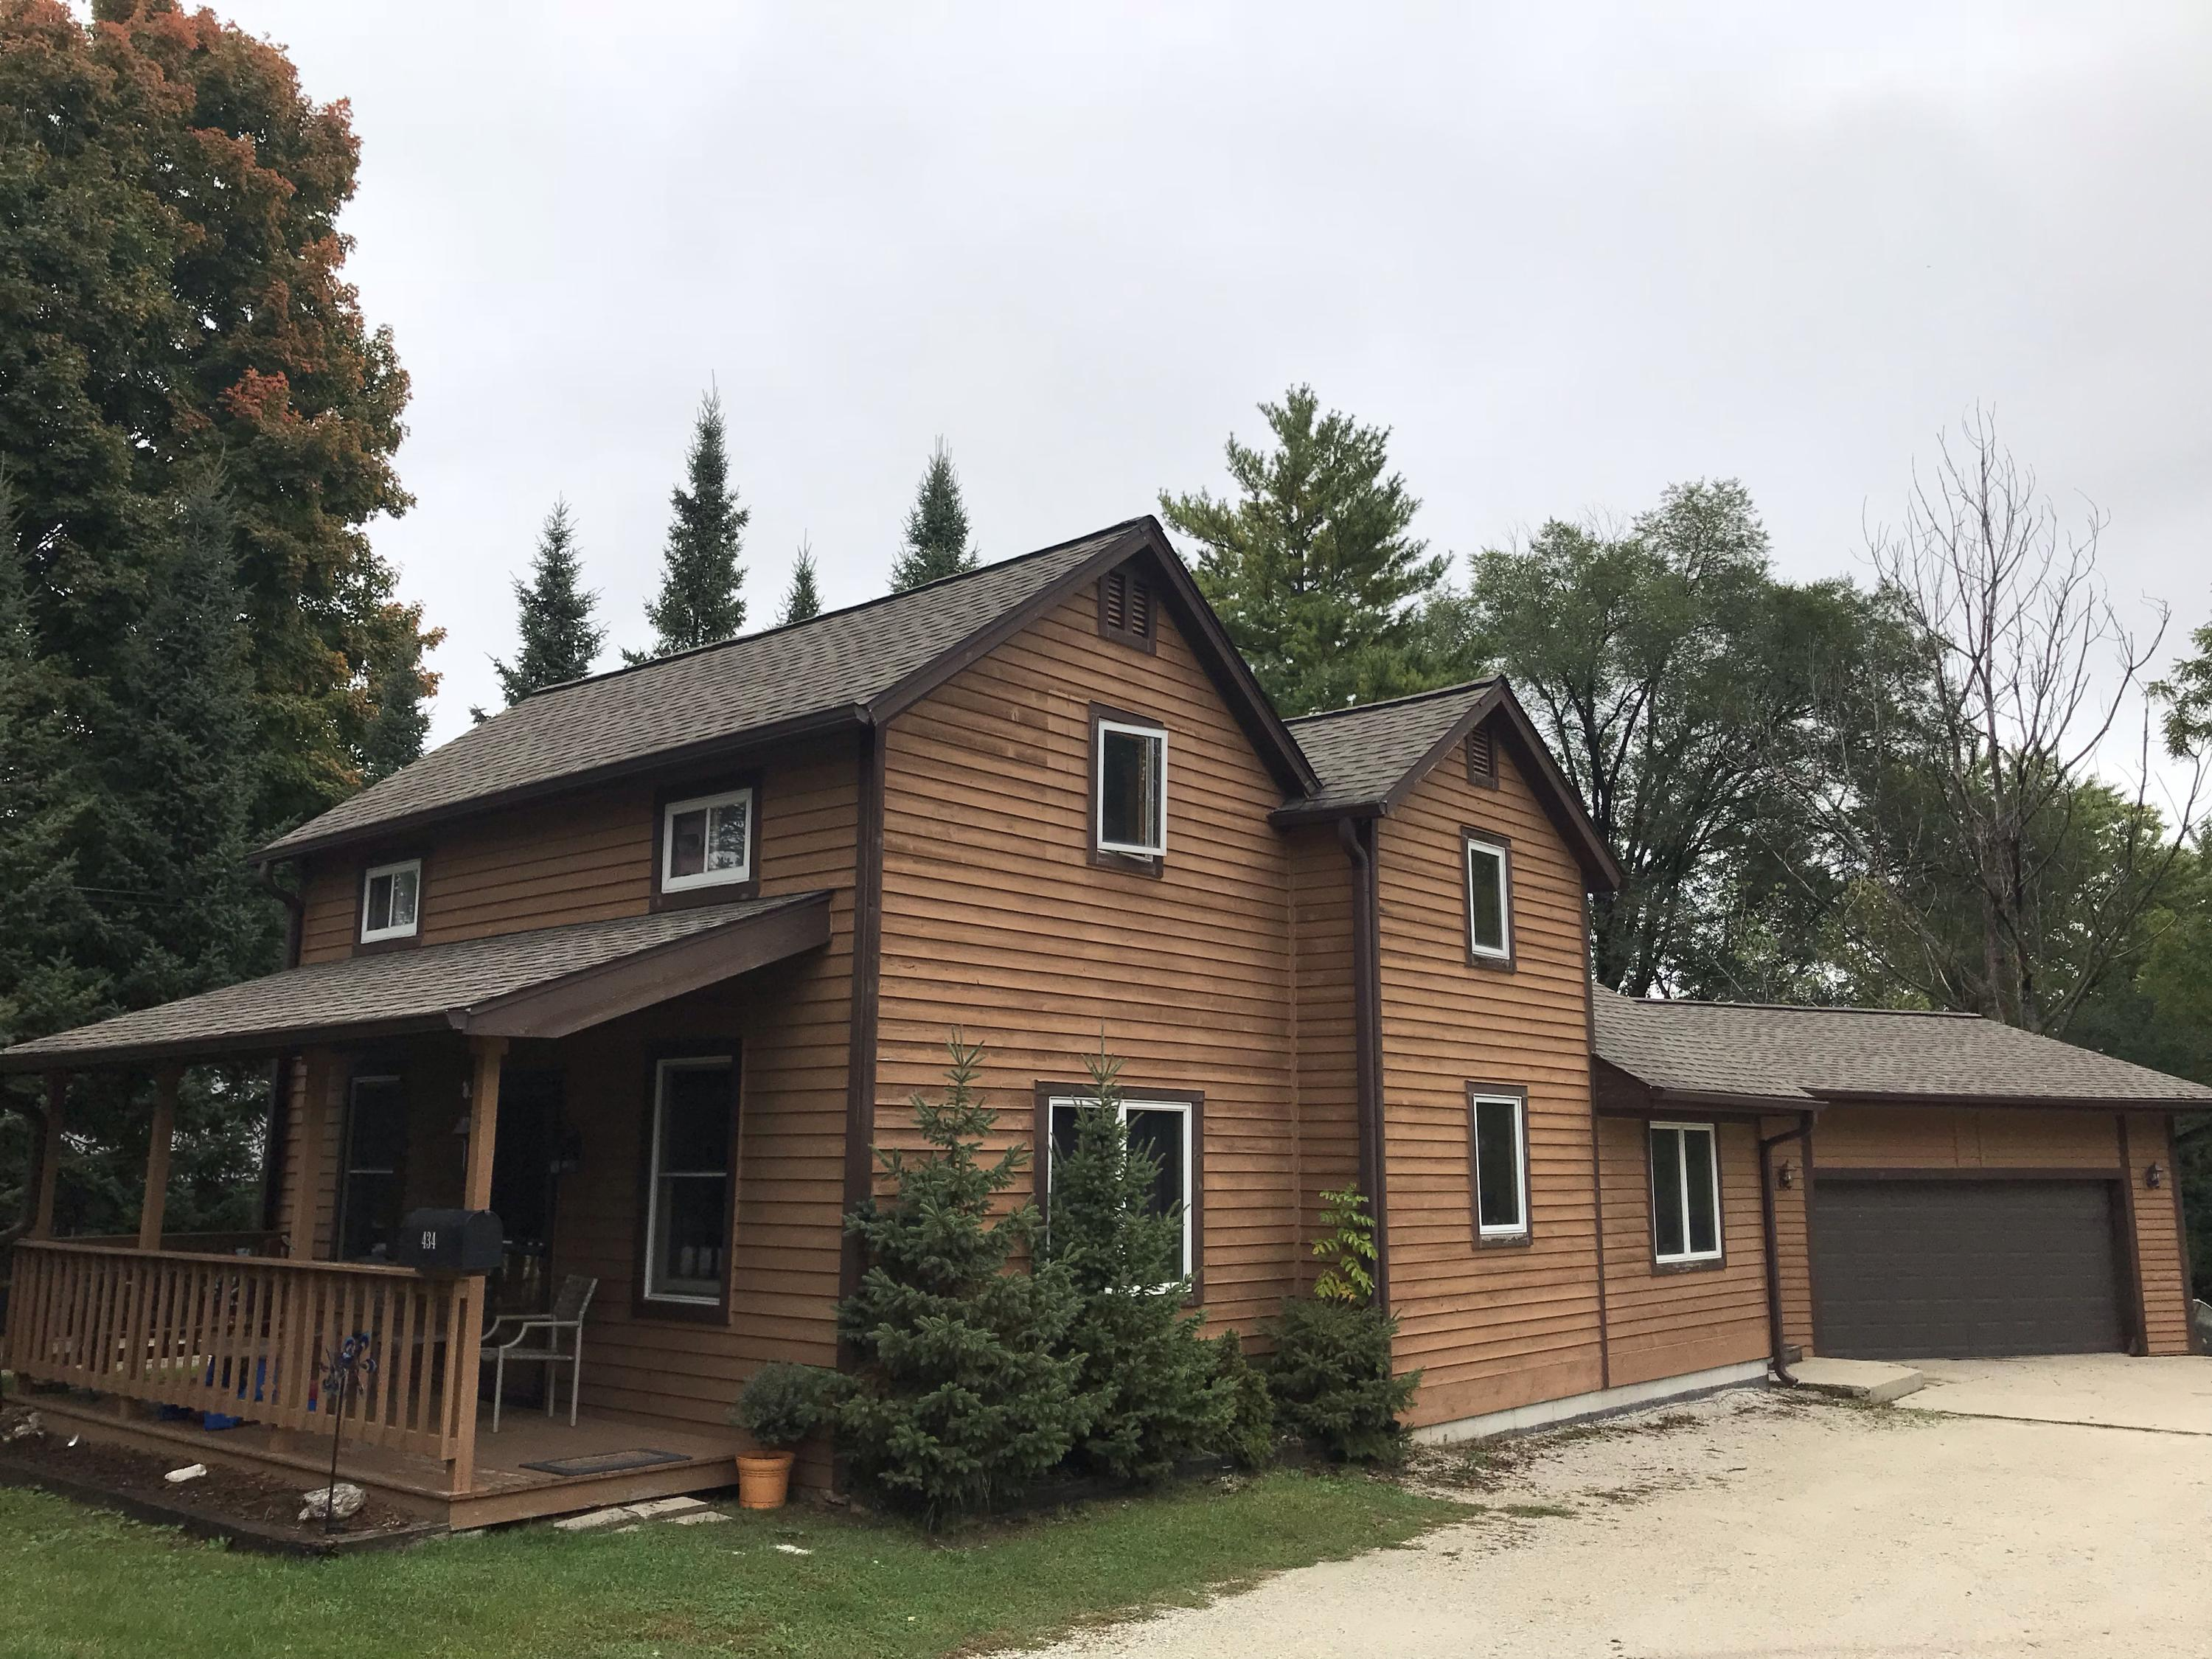 434 High St, Pewaukee, Wisconsin 53072, 3 Bedrooms Bedrooms, ,2 BathroomsBathrooms,Single-Family,For Sale,High St,1608819